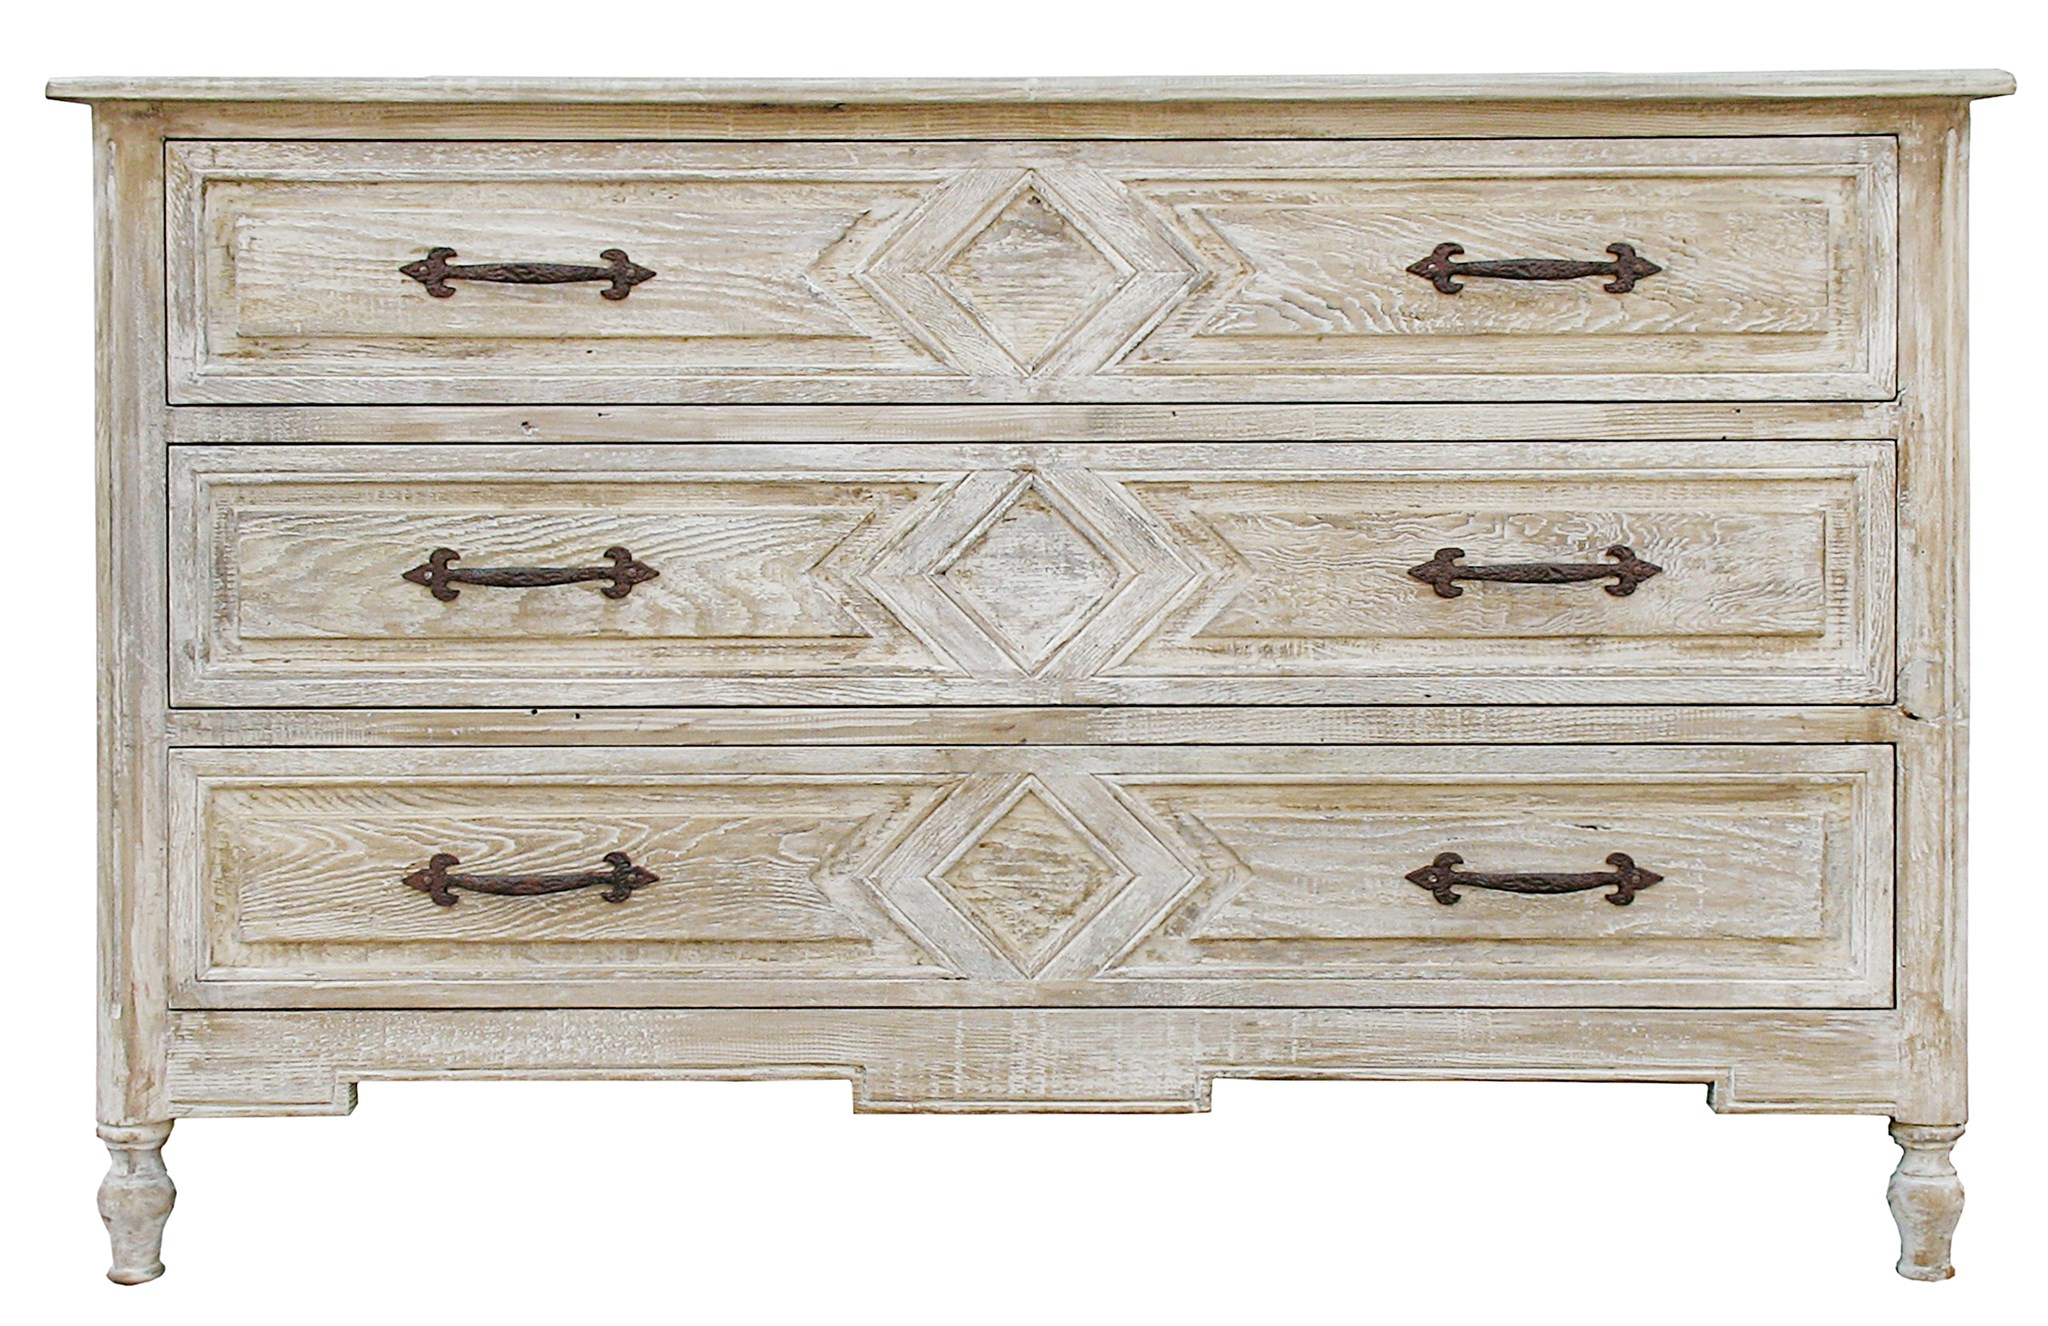 height mont furniture dresser trim products homeworld dressers threshold noir italia width alf drawer item drawers